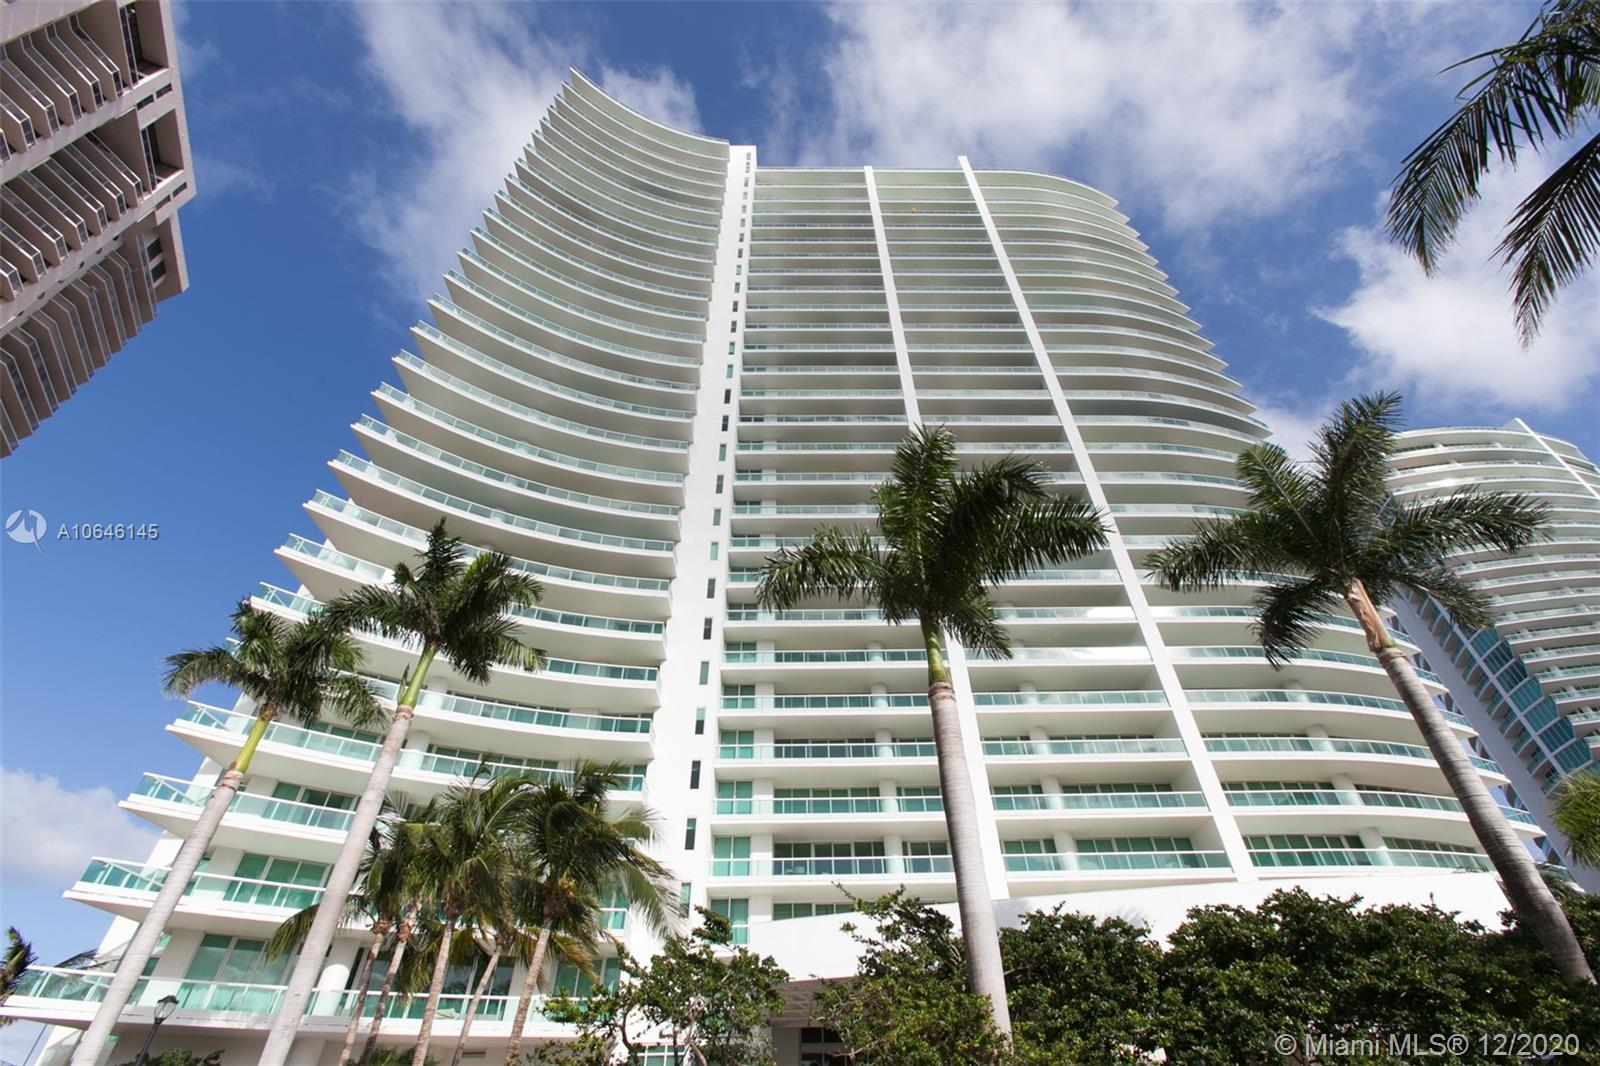 """THE CROWN JEWEL OF AVENTURA """"PORTO VITA"""" FINEST RESIDENCE. THE MOST DESIRABLE ''01'' LINE! ENTER FROM PRIVATE ELEVATOR FOYER AND IMMEDIATELY AND THROUGHOUT THE BEST AND MOST EXQUISITE DIRECT OCEAN VIEWS OVER GOLDEN BEACH HOMES AND THE INTRACOASTAL. THIS FLOW THROUGH 5,141 SF RESIDENCE HAS A SPACIOUS WIDE OPEN FLOW THRU FLOOR PLAN OFFERING SUNRISE + SUNSET AND STUNNING FABULOUS RENOWNED TURNBERRY GOLF COURSE + LAKE VIEWS ALSO. 4 BEDROOM SUITE , OVERSIZED MASTER WITH HIS/HERS BATHS AND HIS/HERS CLOSETS + SPACIOUS TERRACE, PLUS A DEN OR 5TH BEDROOM + STAFF QUARTER + UTILITY ROOM AND 5.5 BATHS. THIS HOME IS IN IMPECCABLE CONDITION - FINEST FINISHES. A GEM! ONE OF A KIND!"""